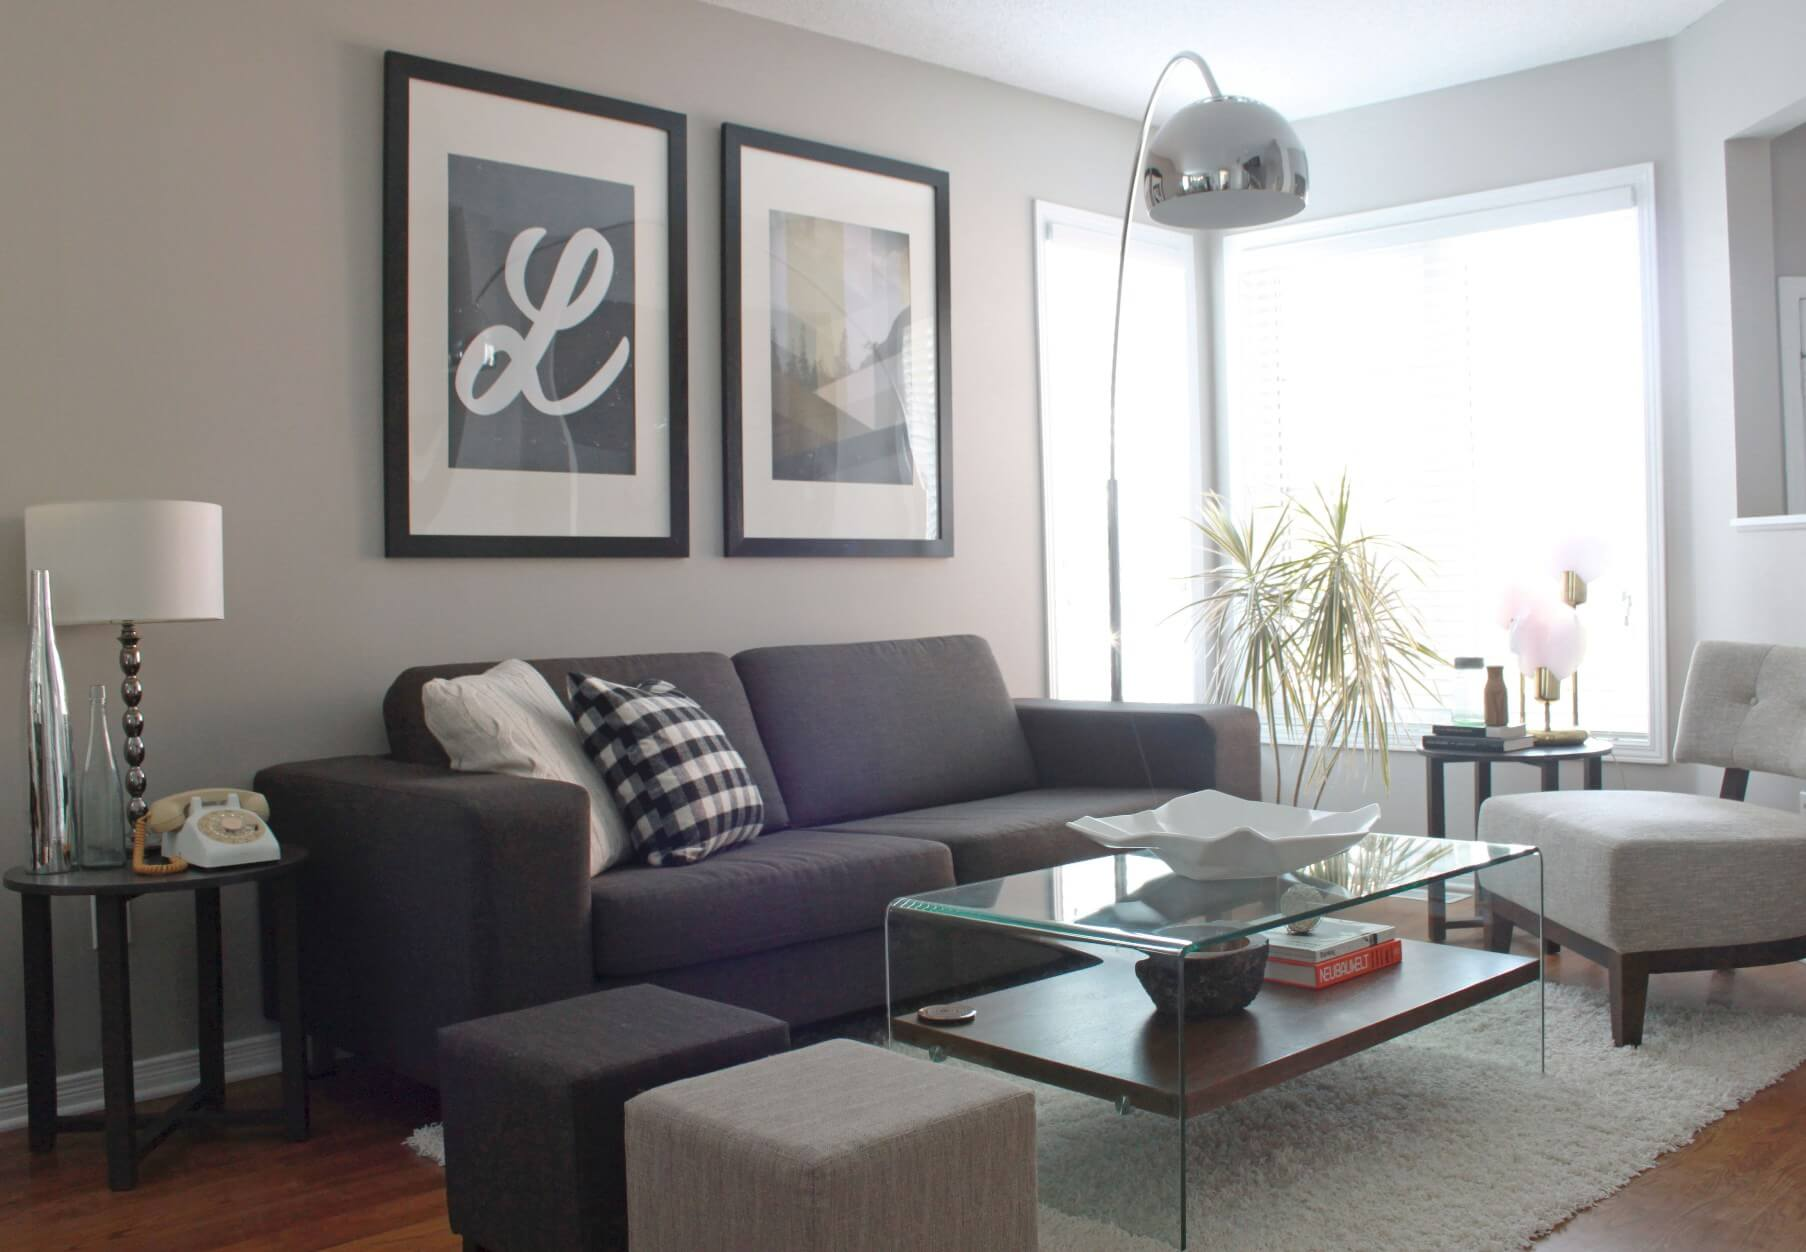 A beautifully staged living room in gray tones.